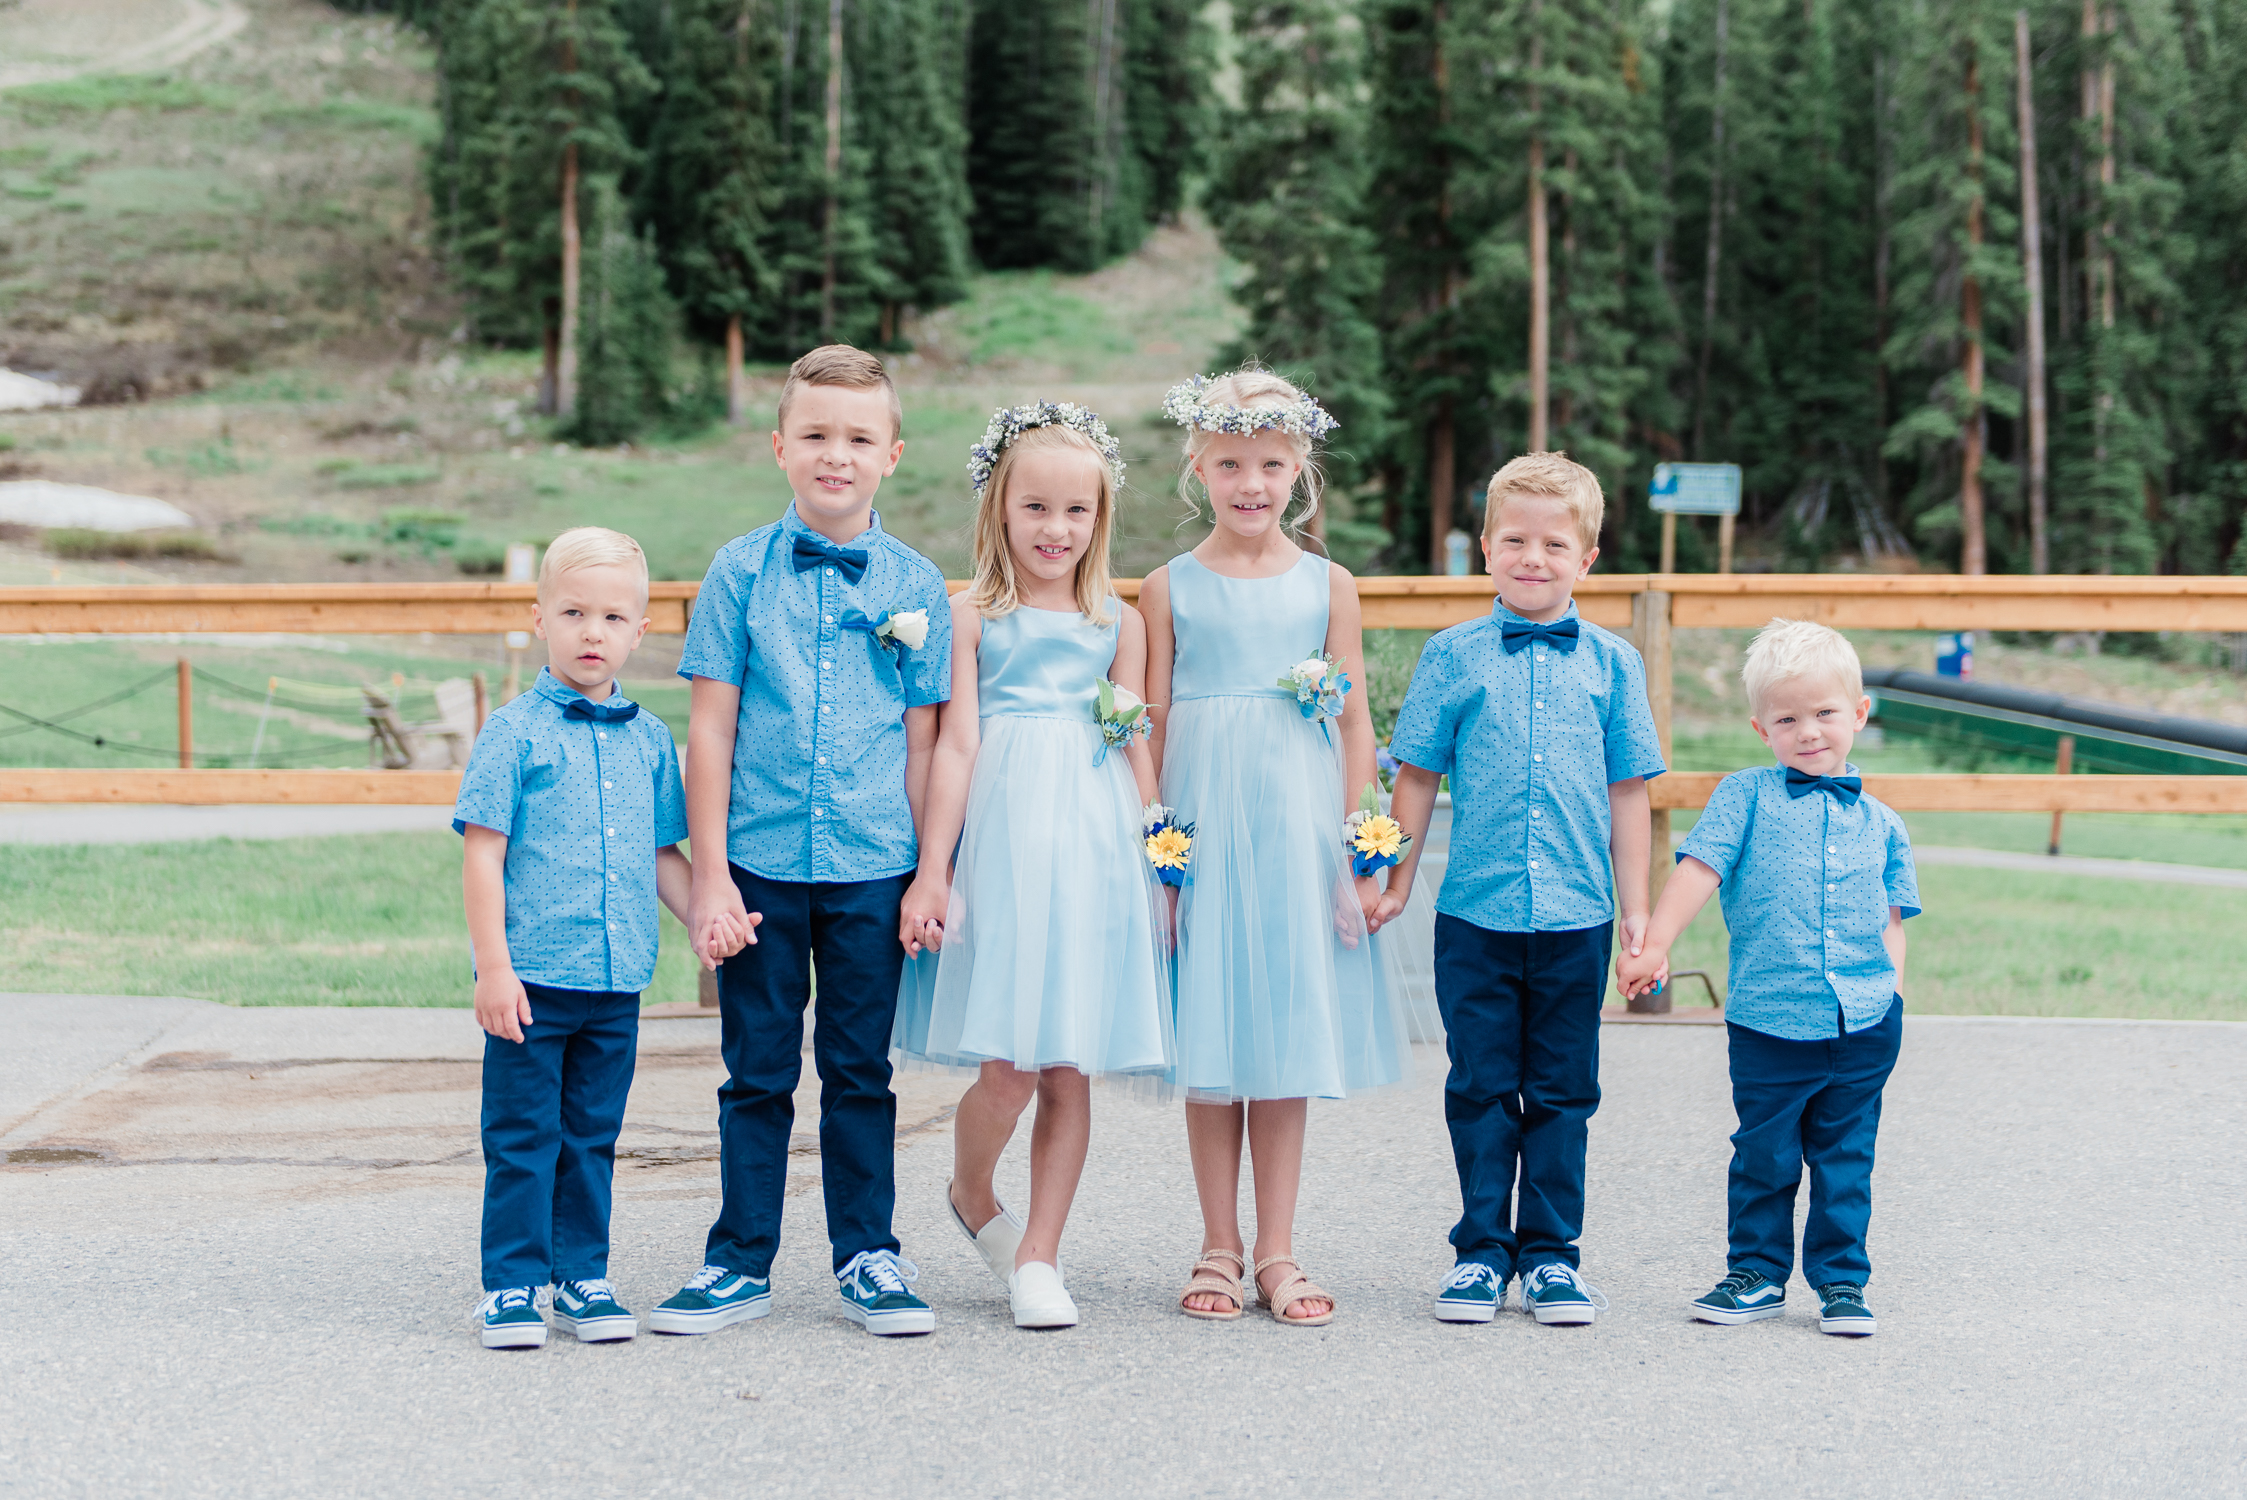 Arapahoe Basin Wedding at Black Mountain Lodge, Colorado - Ashleigh Miller Wedding Photography